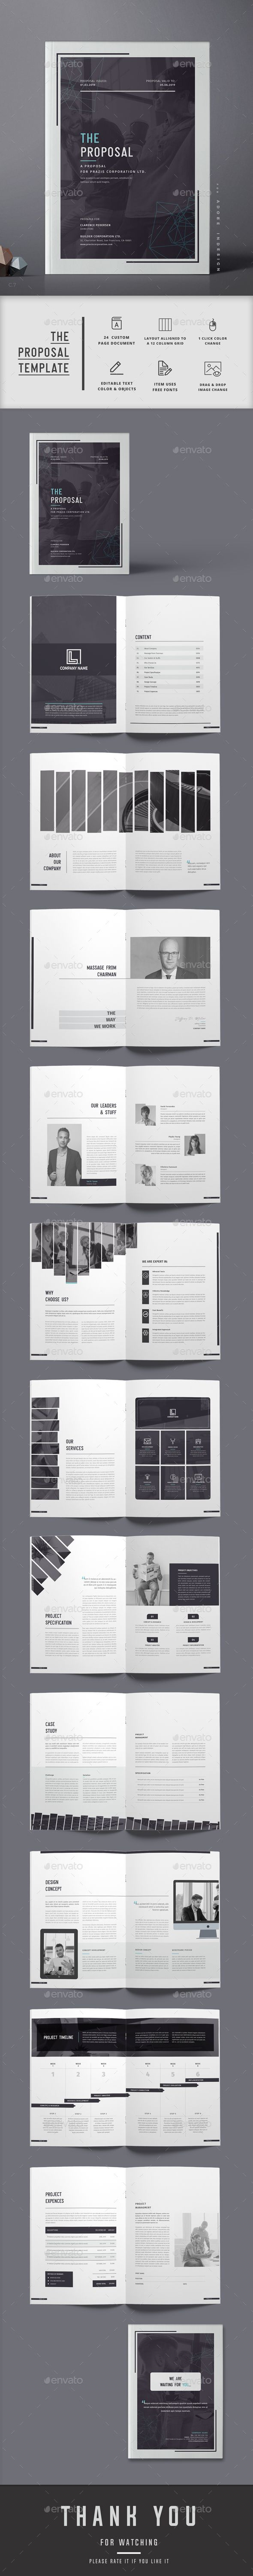 Proposal — InDesign INDD #report • Available here ➝ https://graphicriver.net/item/proposal/20860145?ref=pxcr